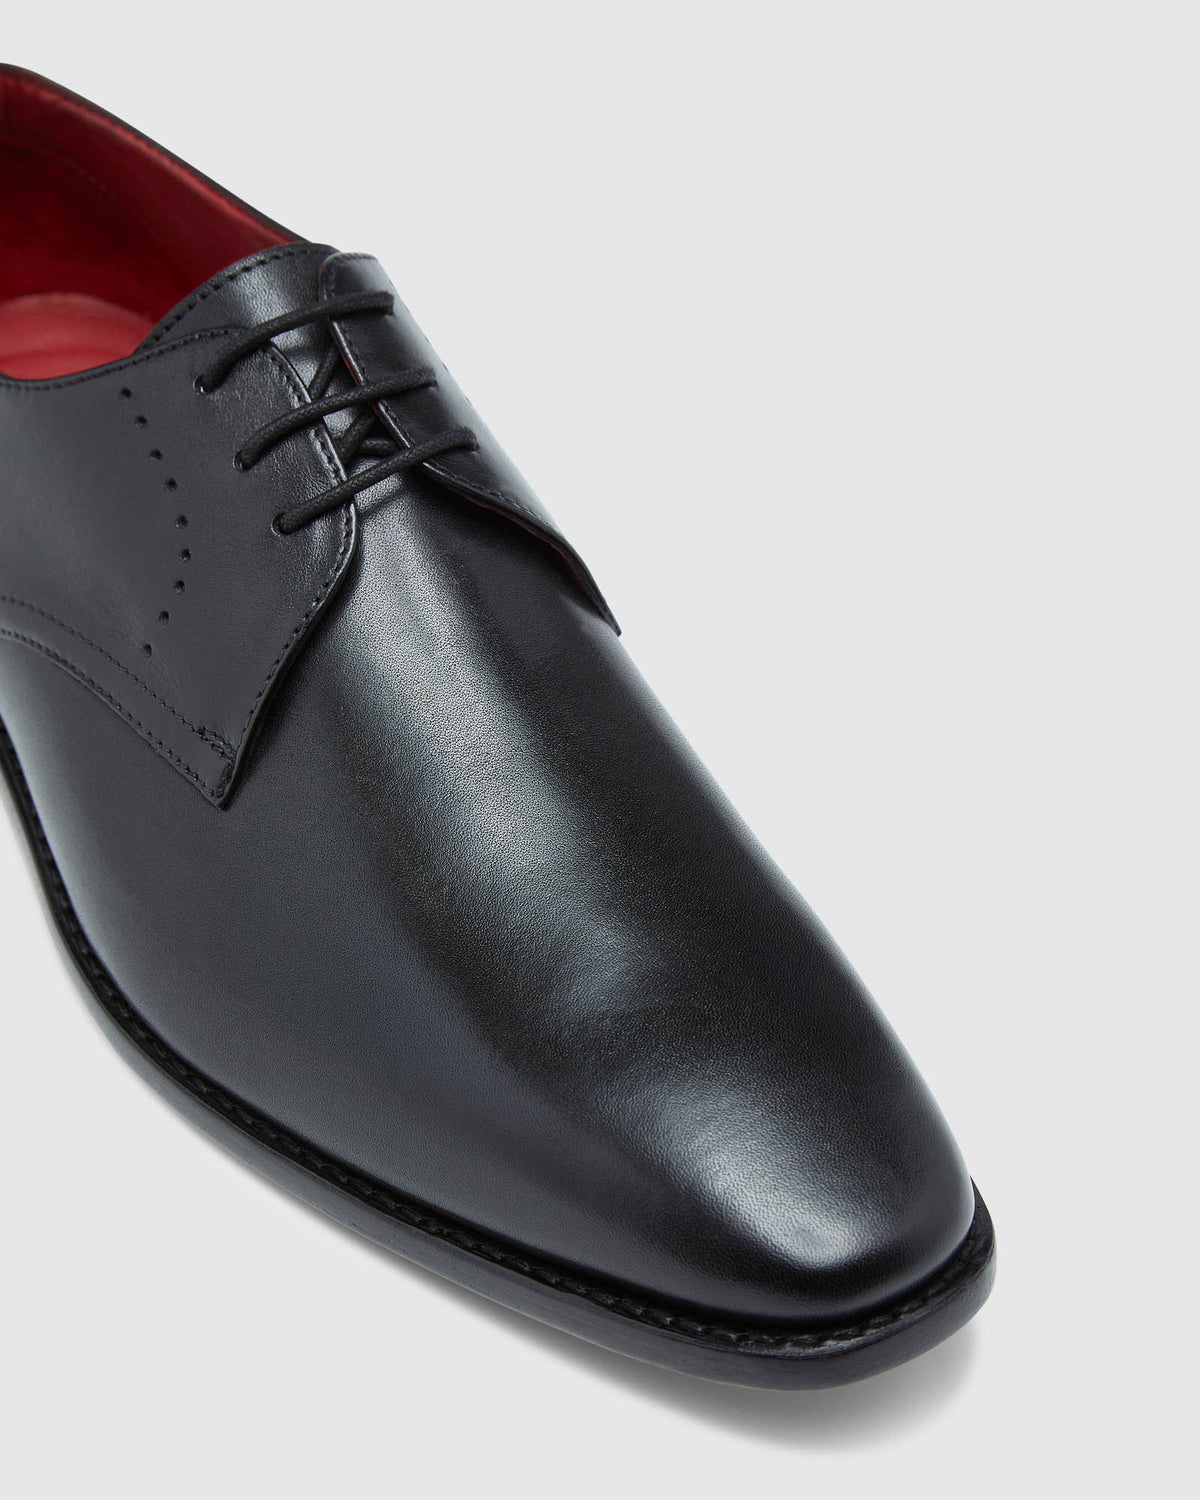 MONTGOMERY GOODYEAR WELTED SHOE